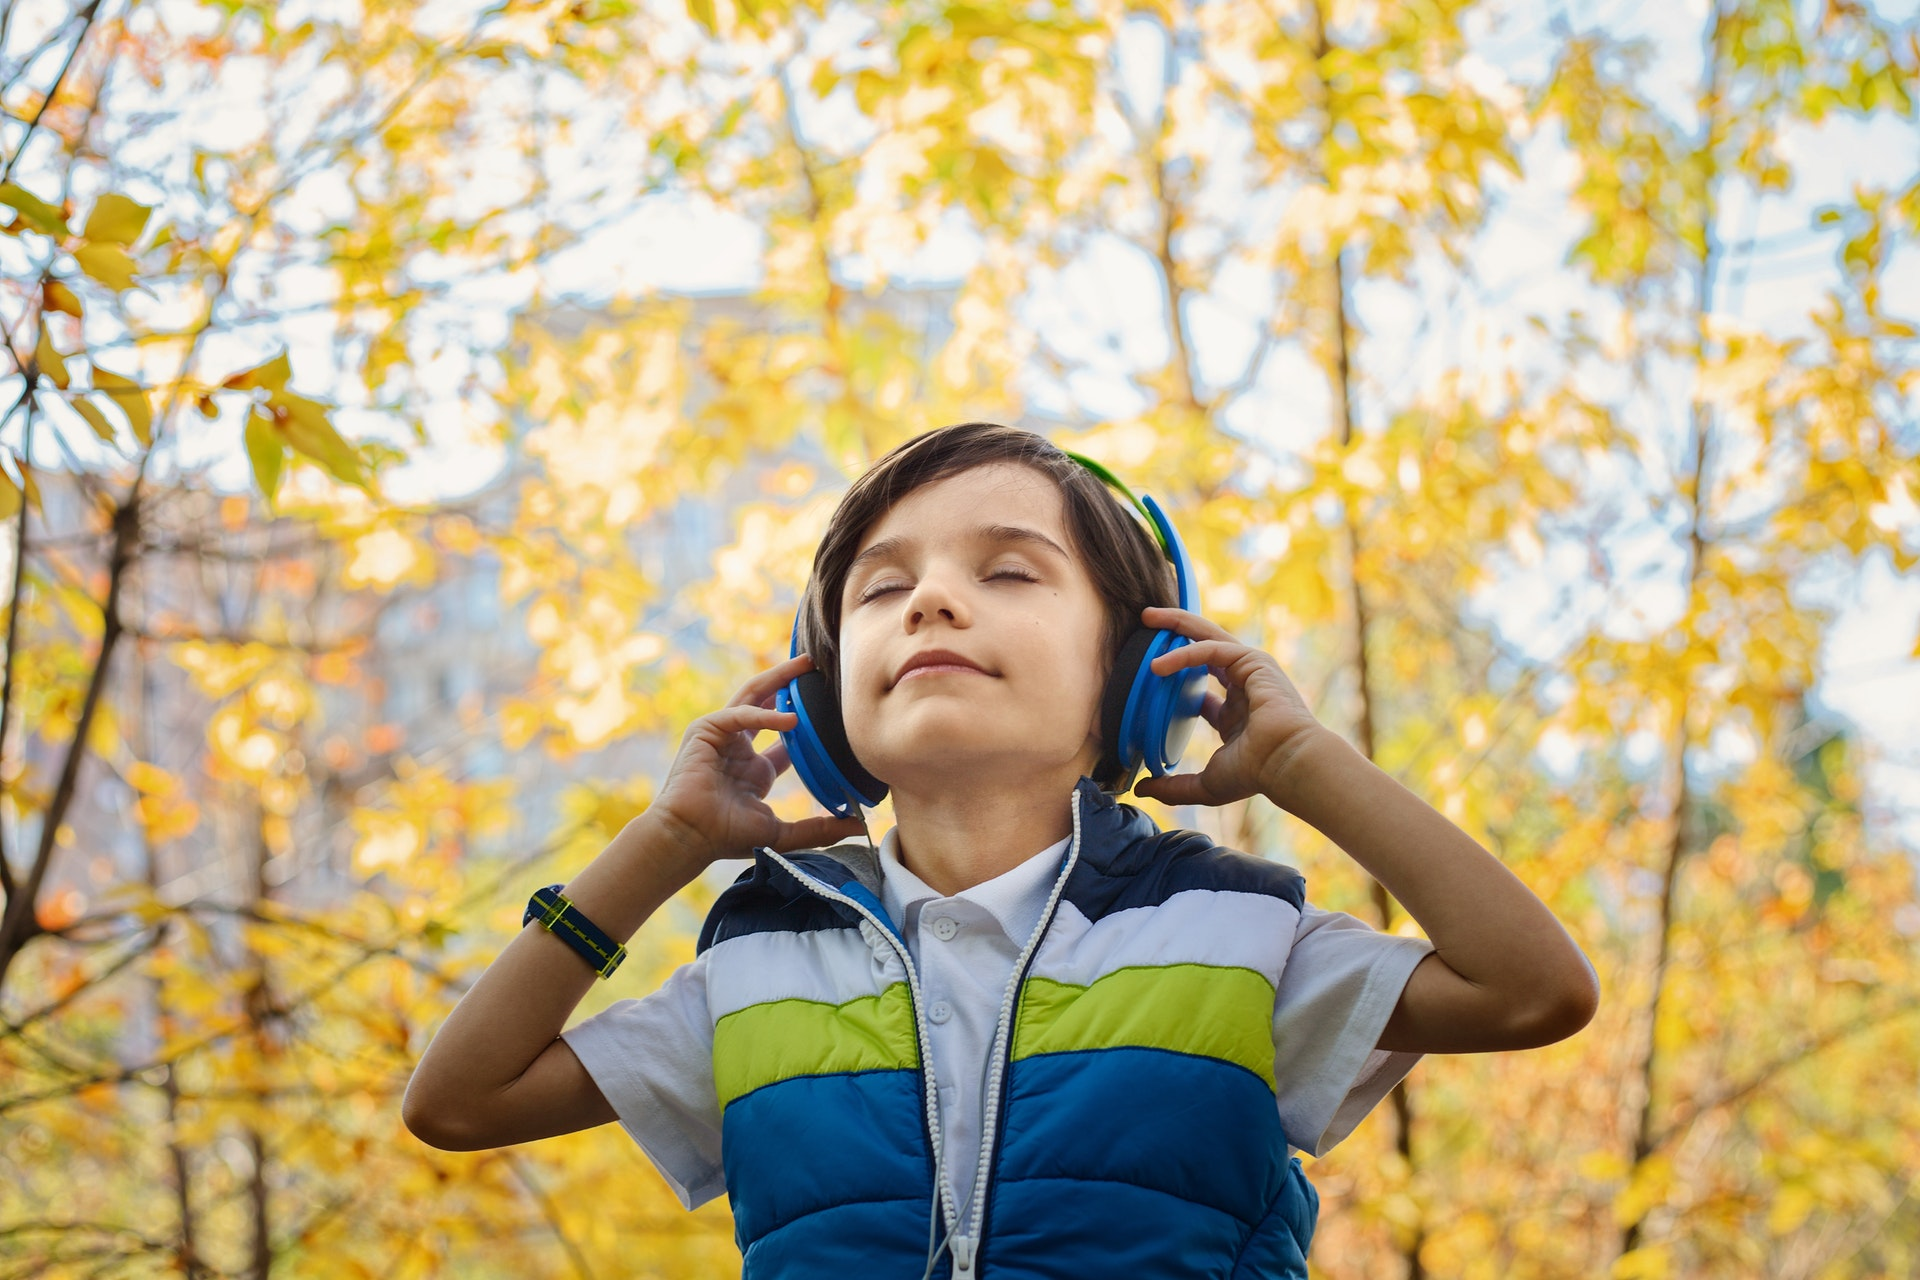 headphones-boy-Jonas Mohamadi-pexels-photo-1490844.jpeg